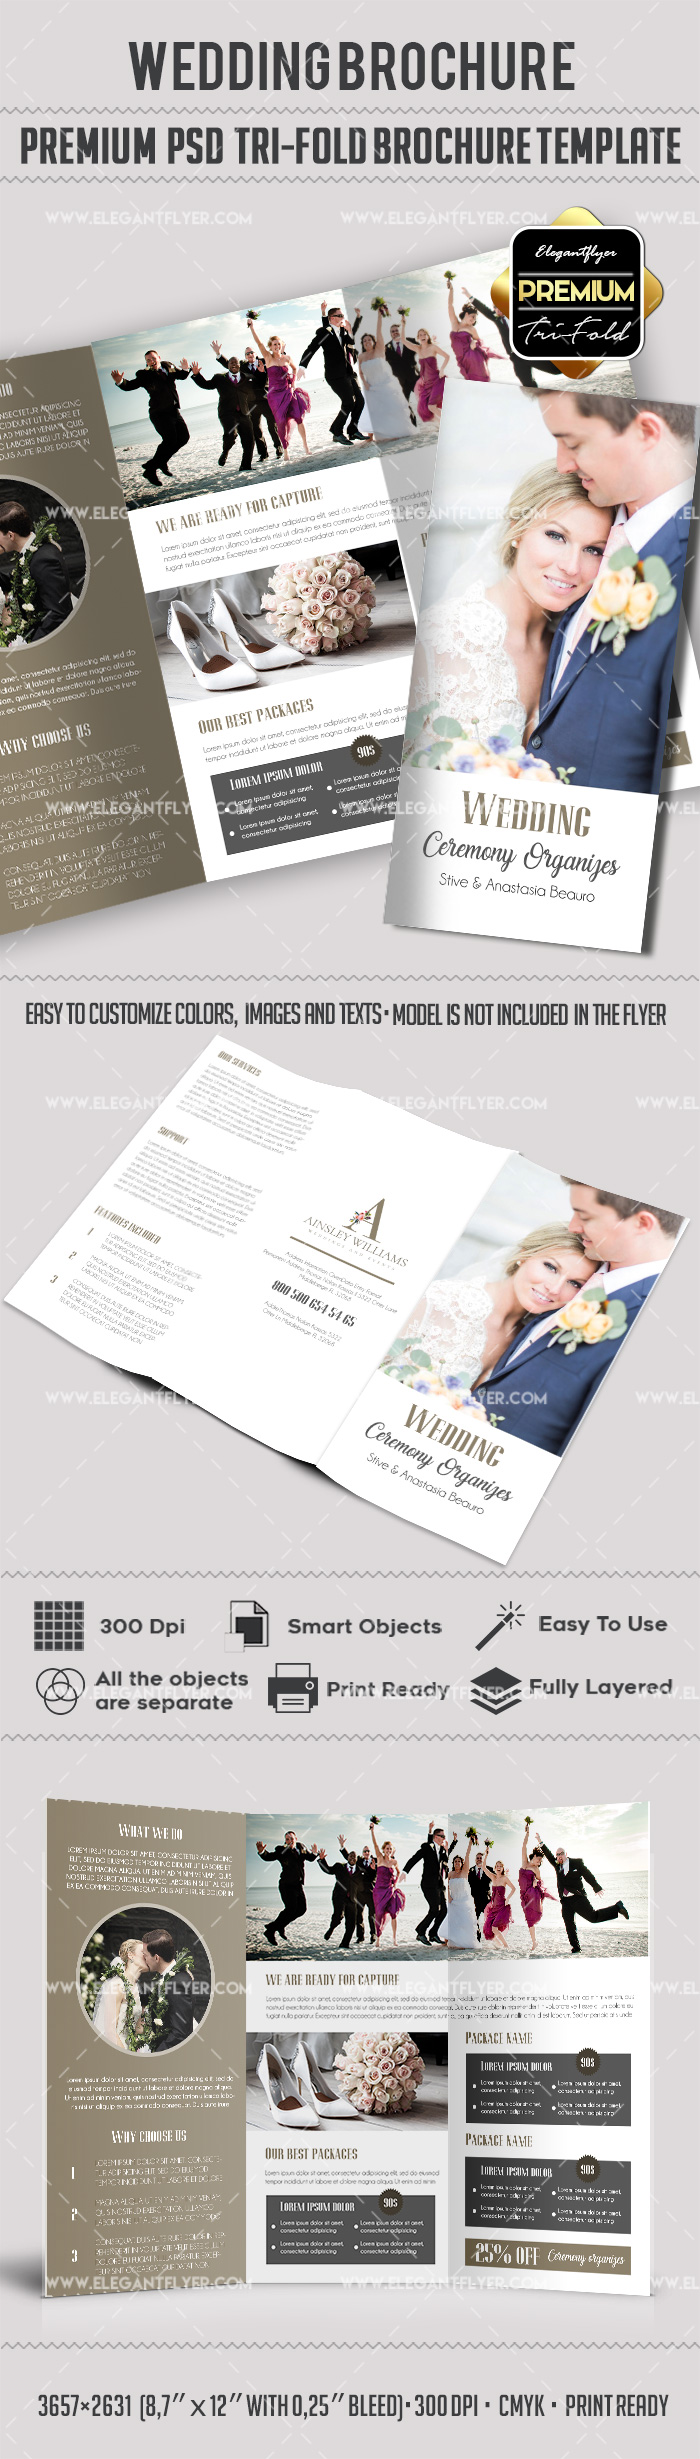 Wedding Dress Tri-Fold Brochure